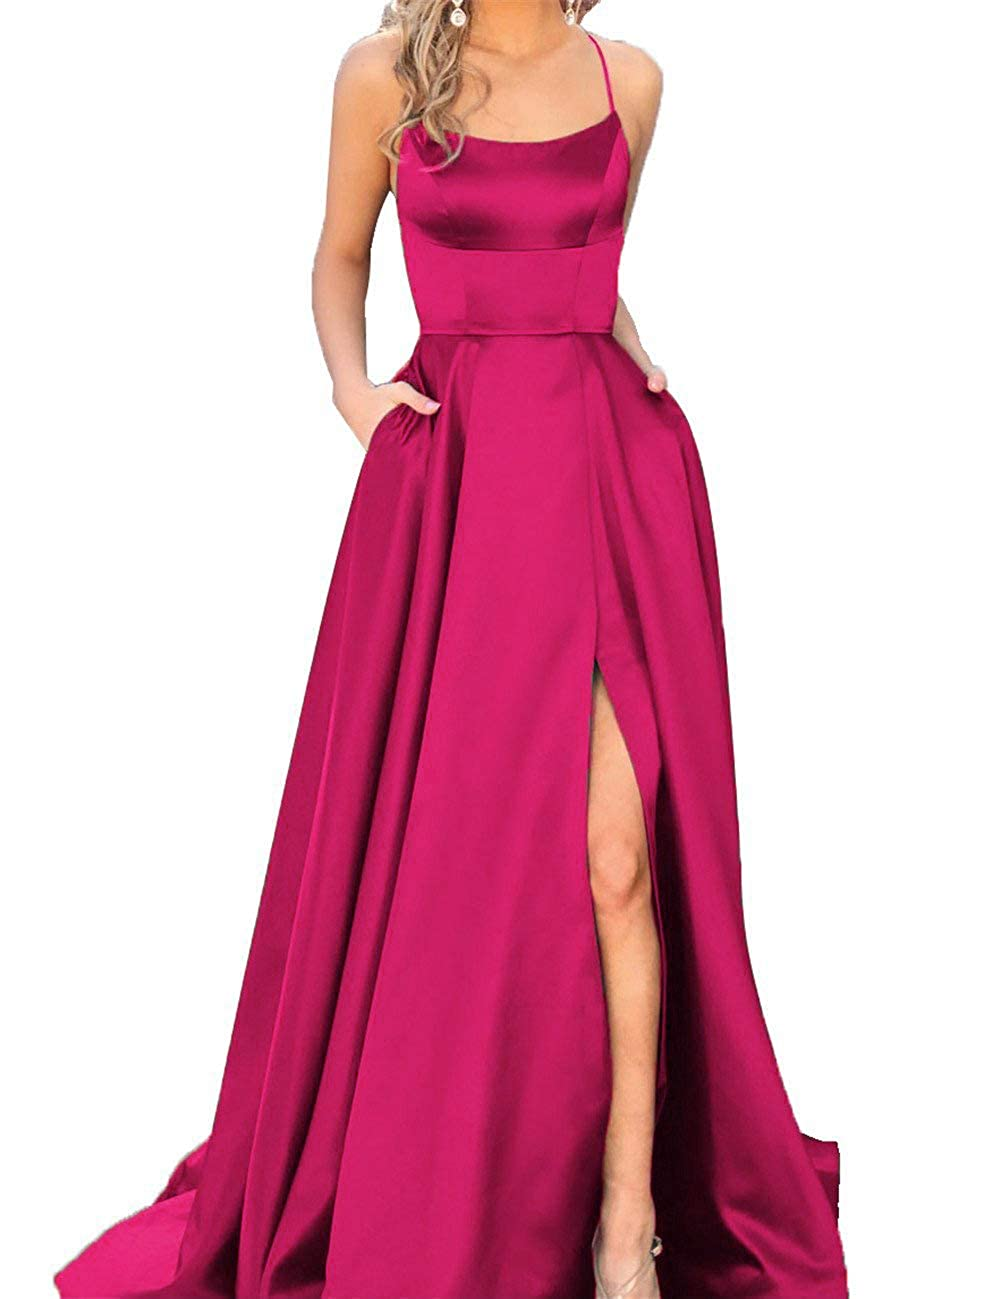 Hot Pink Fanciest Women's Halter Slit Satin Prom Dresses Long Backless Evening Formal Gowns